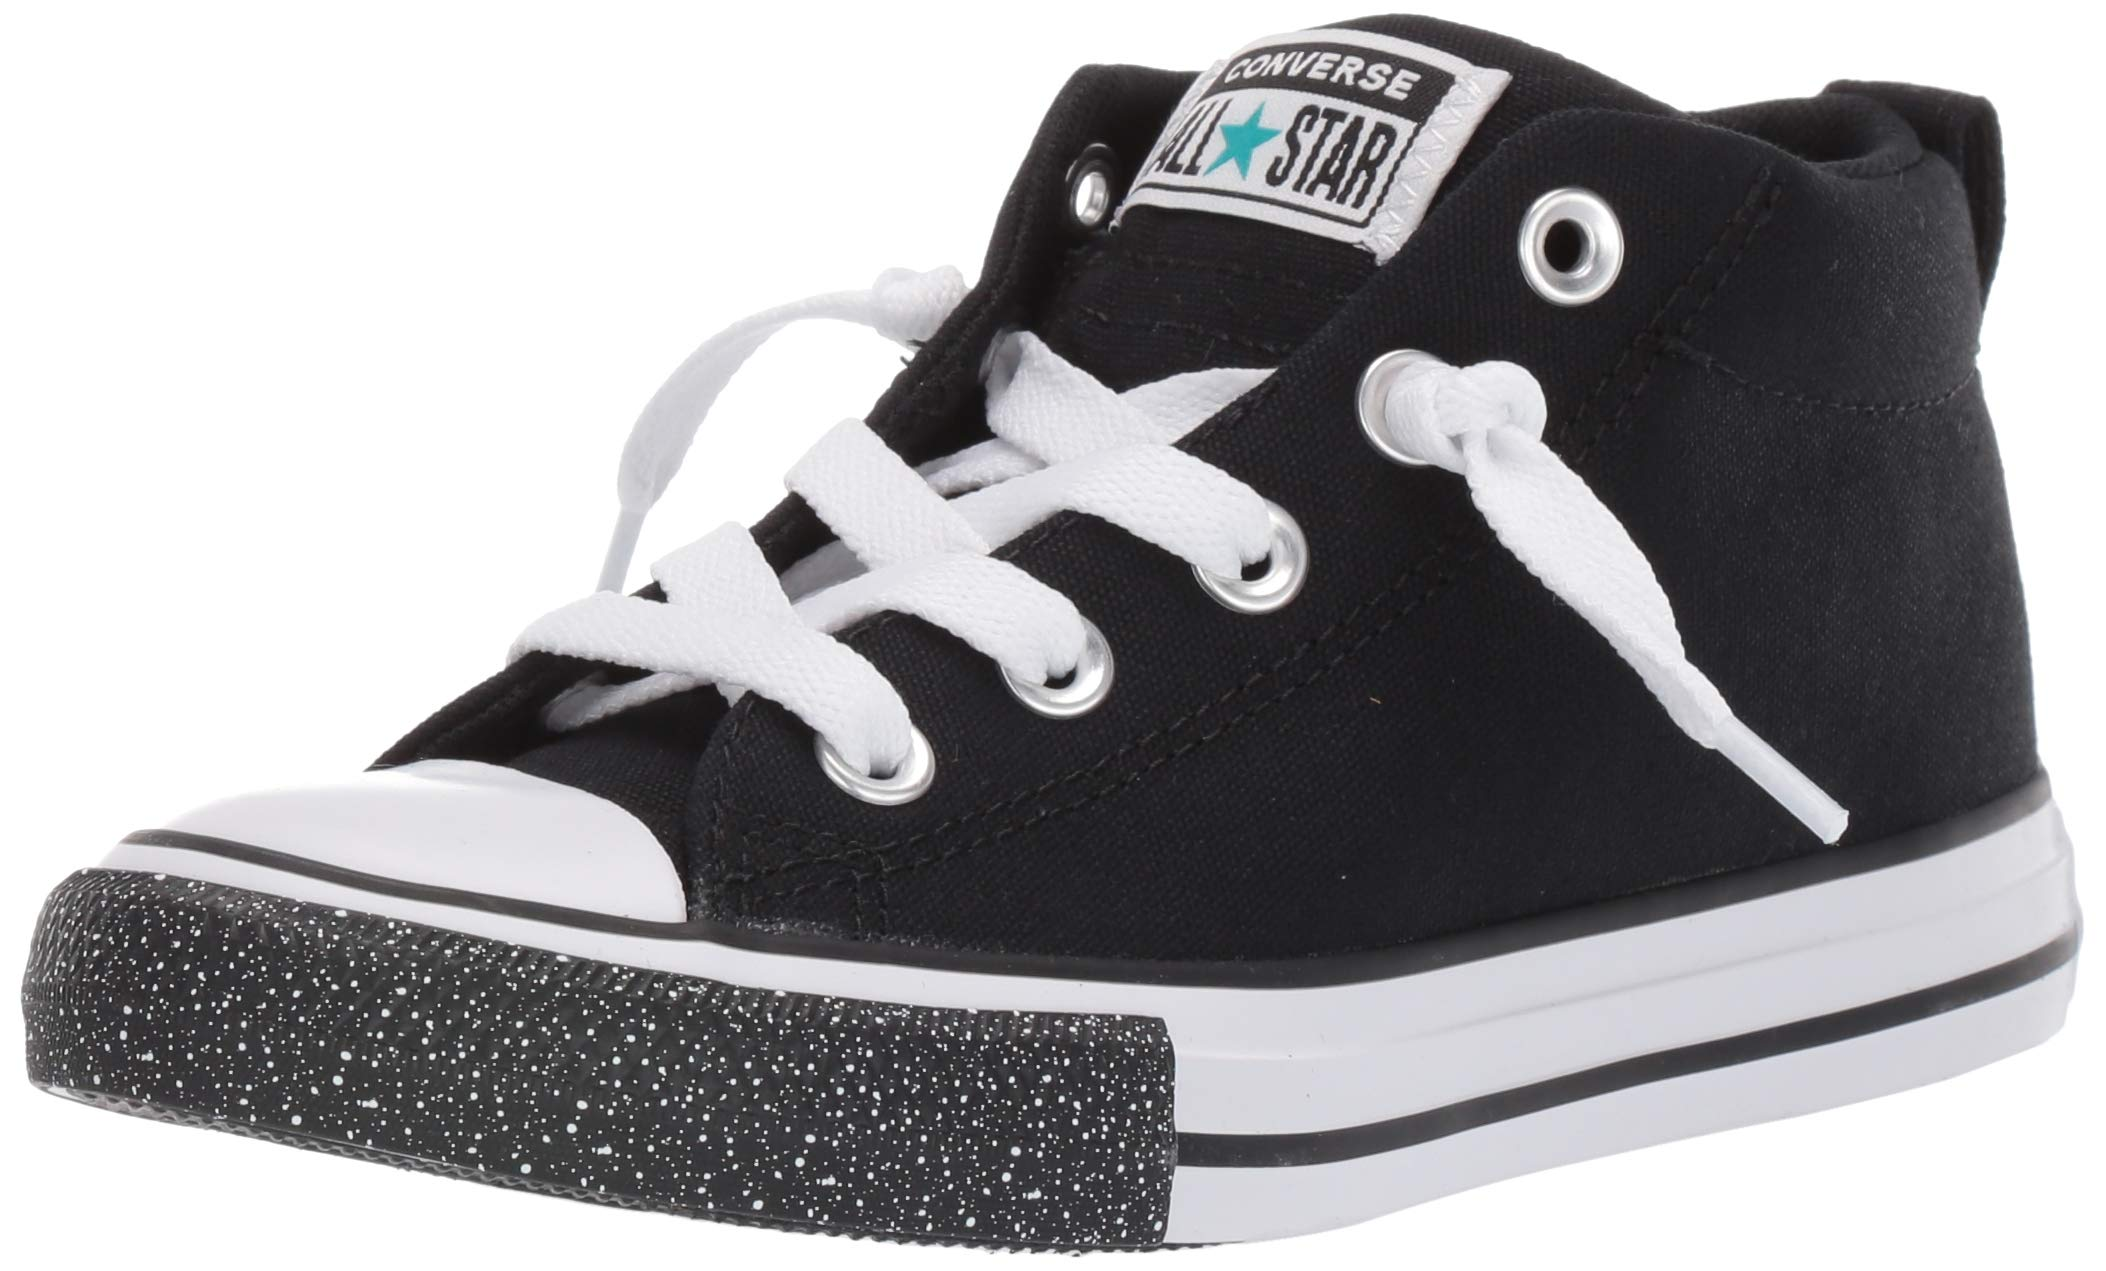 Converse Baby Chuck Taylor All Star Street Speckle Toe Mid Top Sneaker, Black/White/Turbo Green, 10 M US Toddler by Converse